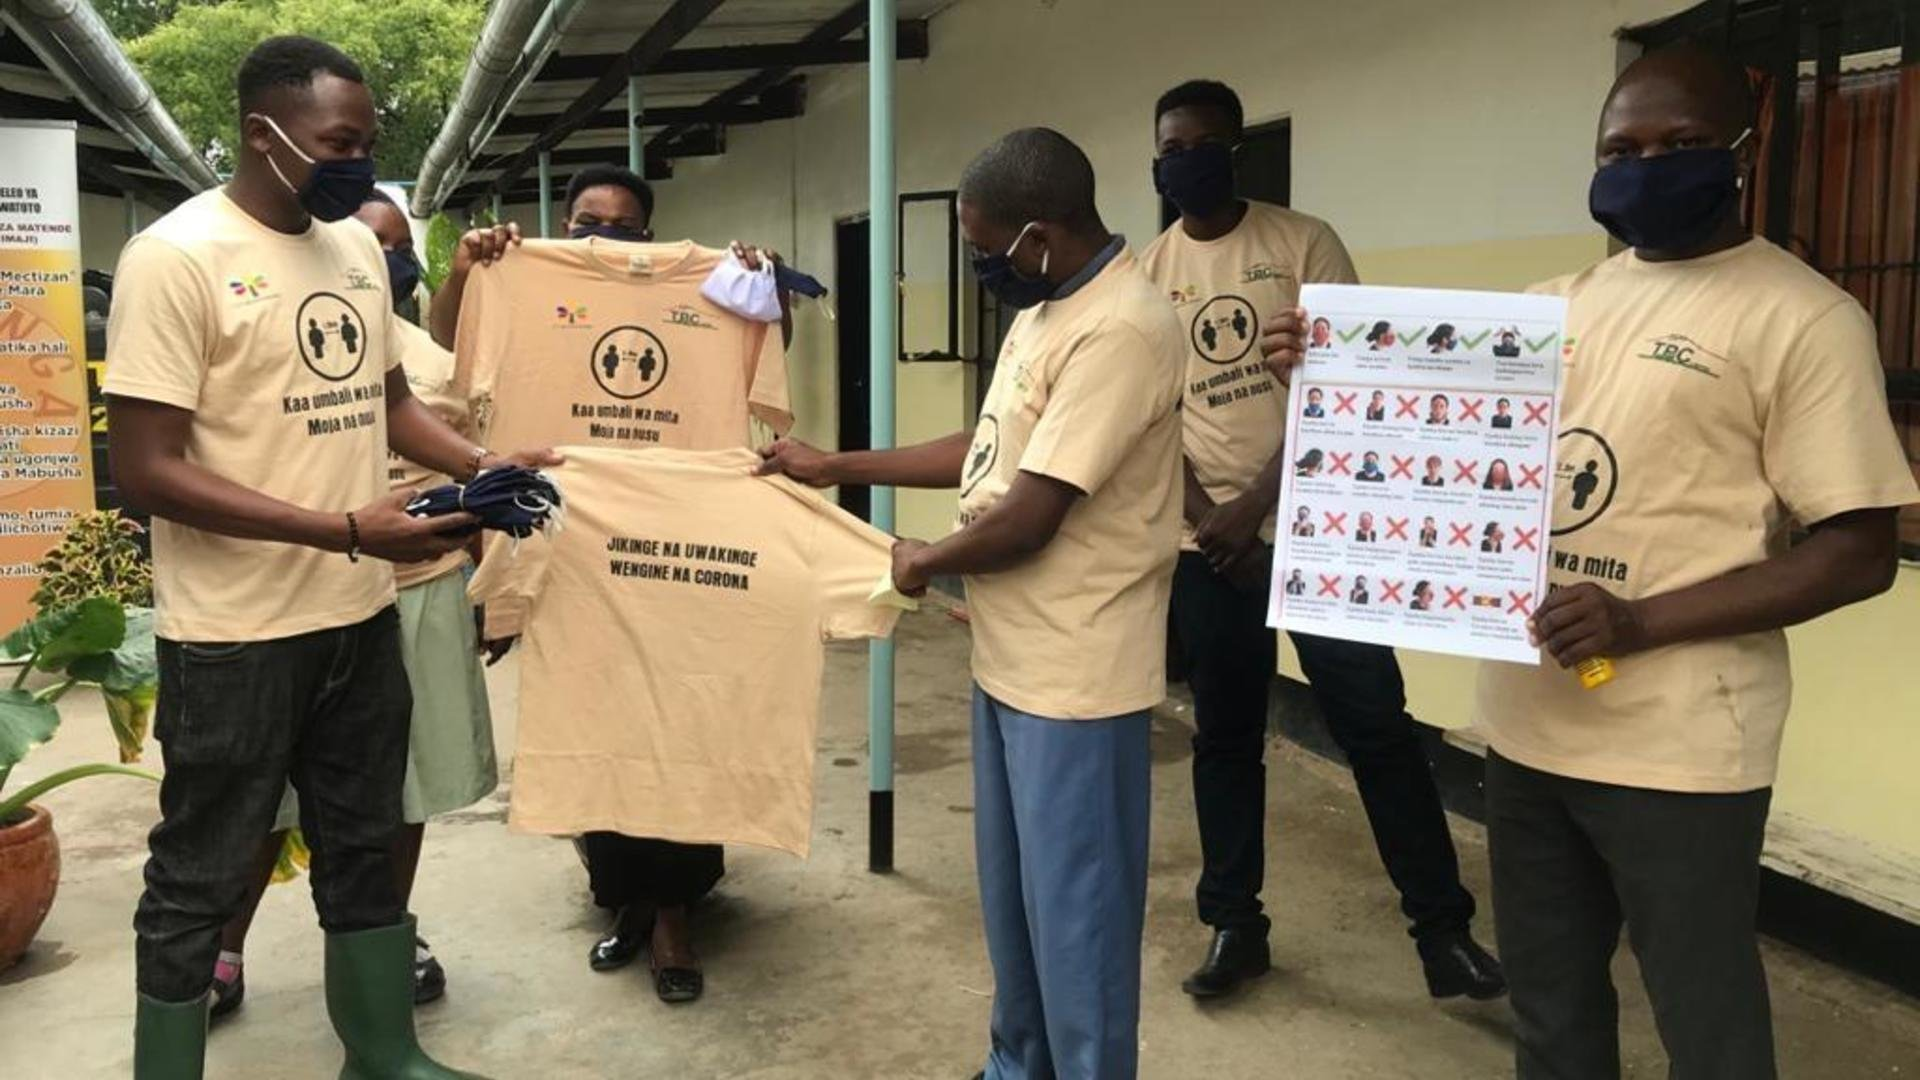 TPC and FT Kilimanjaro raise awareness around COVID-19 in the Lower Moshi region